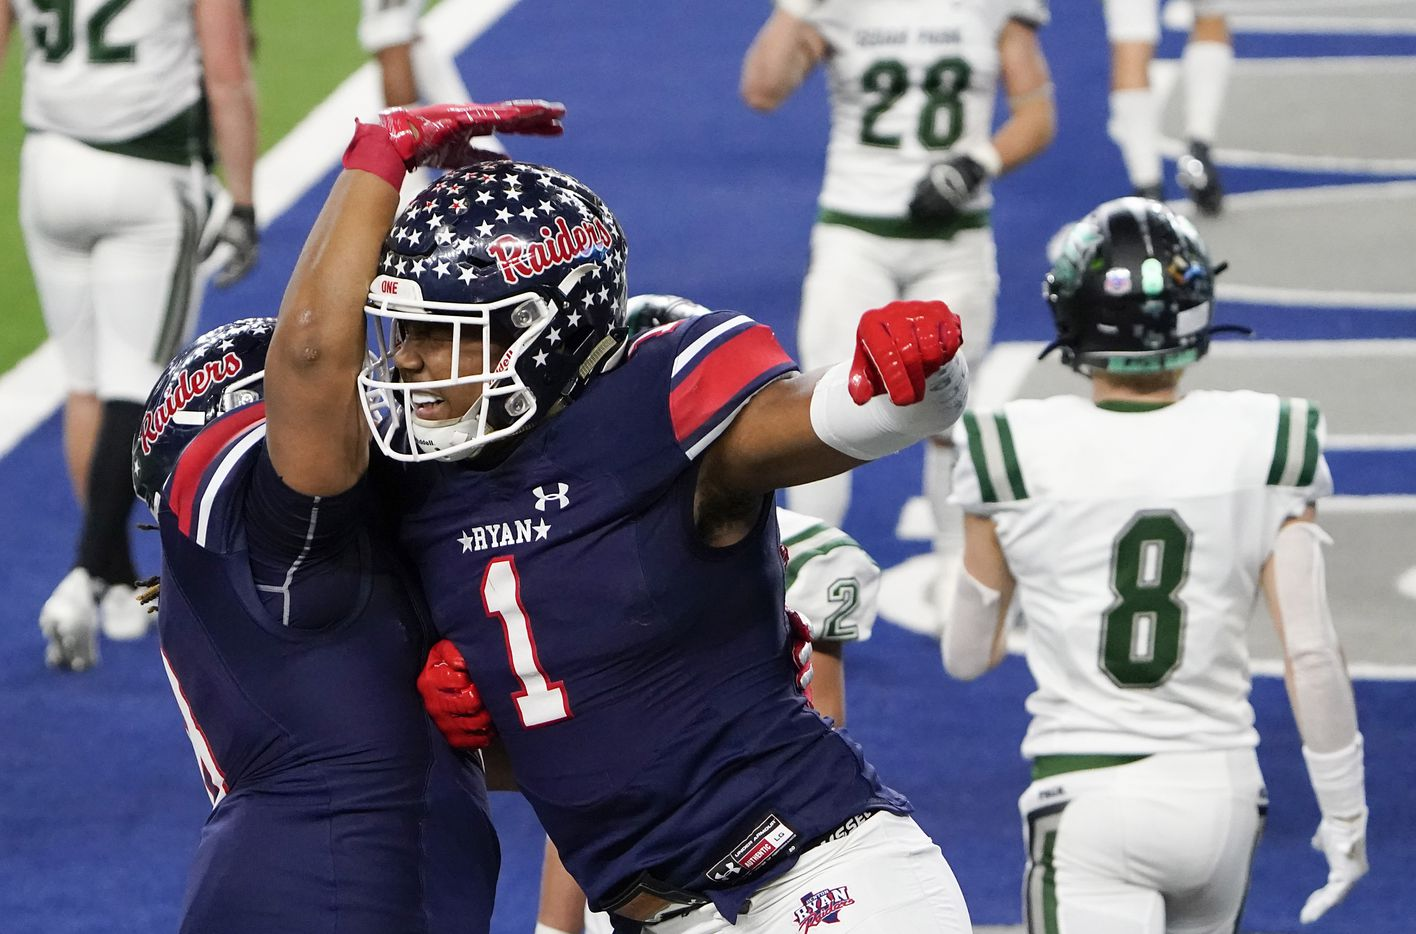 Denton Ryan wide receiver Ja'Tavion Sanders (1) celebrates with teammate Jay Sheppard (8) after catching a touchdown pass from quarterback Seth Henigan past Cedar Park defensive back Casyn Wiesenhutter (8) during the second half of the Class 5A Division I state football championship game at AT&T Stadium on Friday, Jan. 15, 2021, in Arlington, Texas. Ryan won the game 59-14. (Smiley N. Pool/The Dallas Morning News)